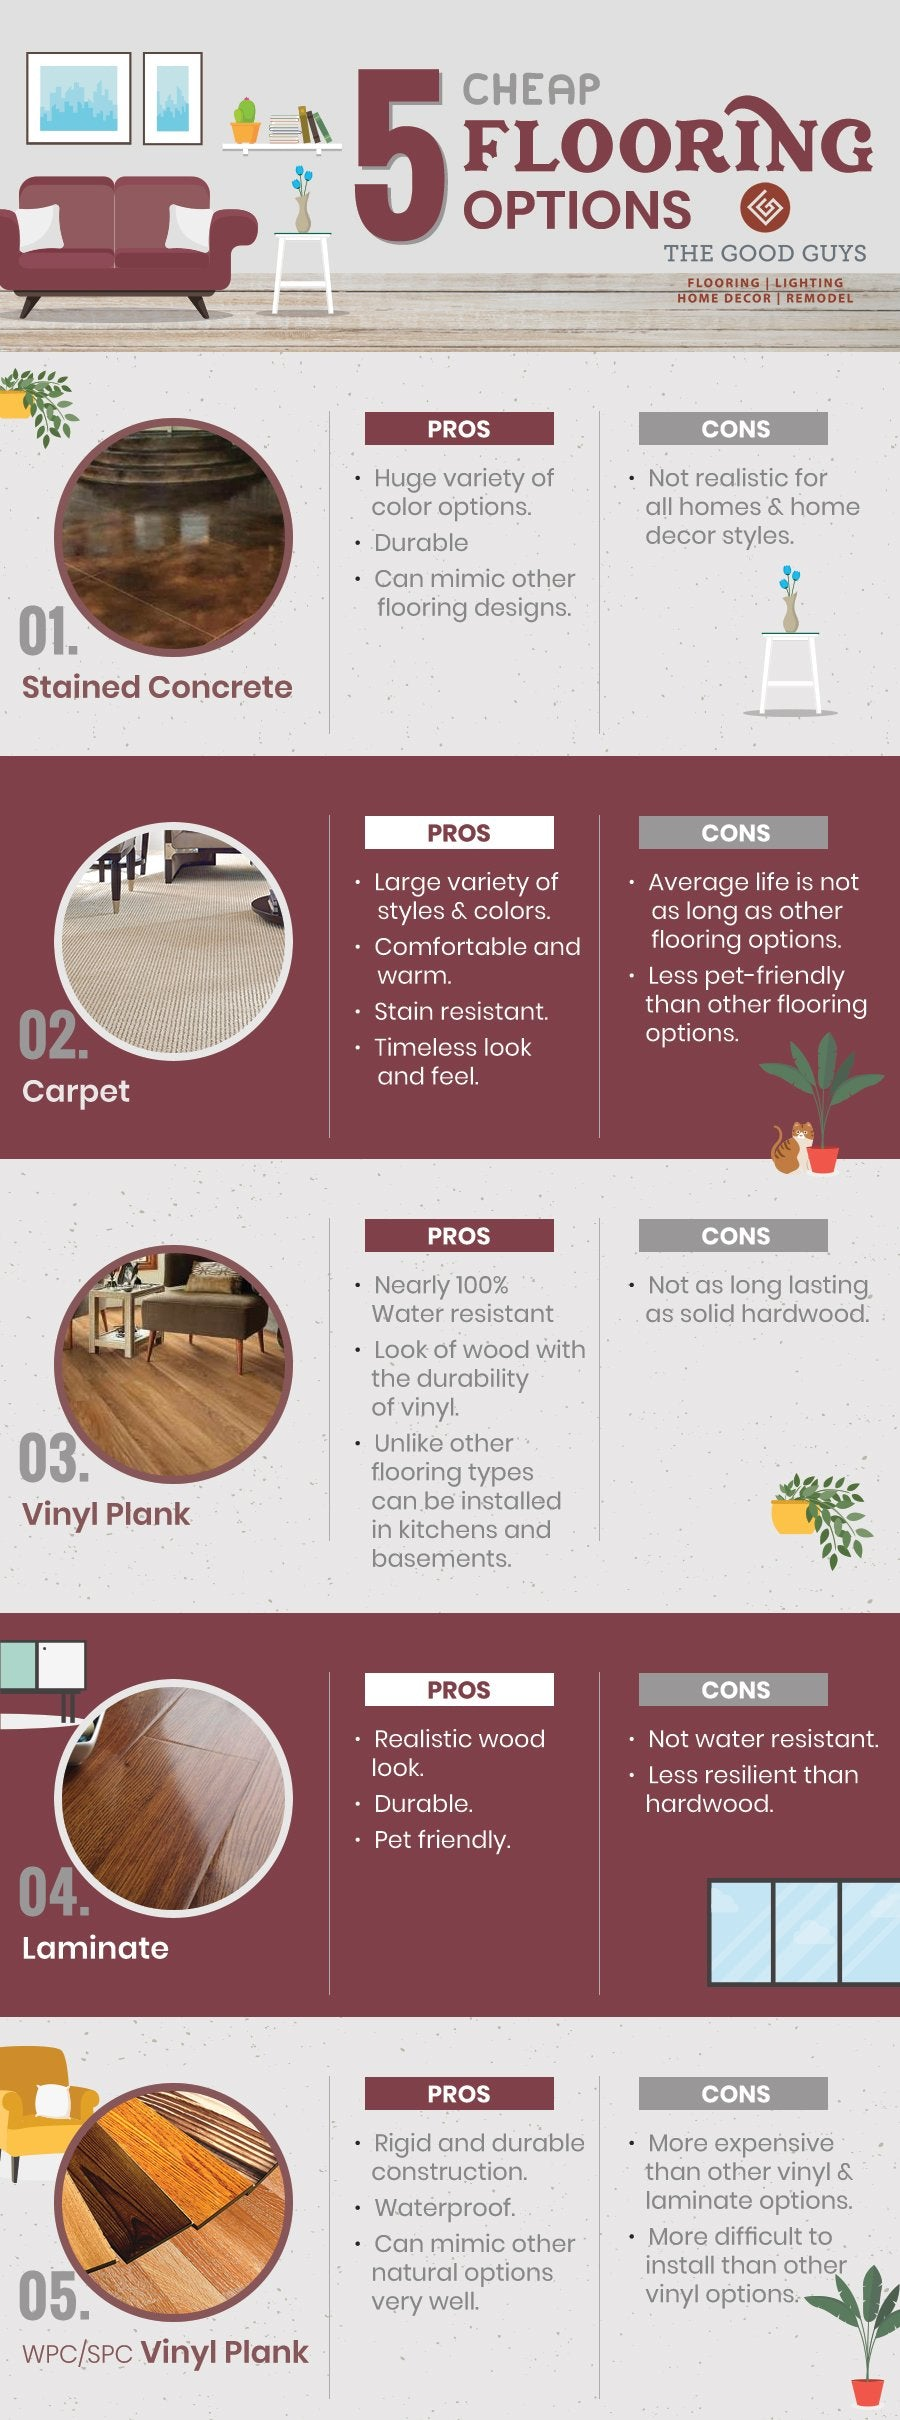 Top 5 Cheap Flooring Options Infographic